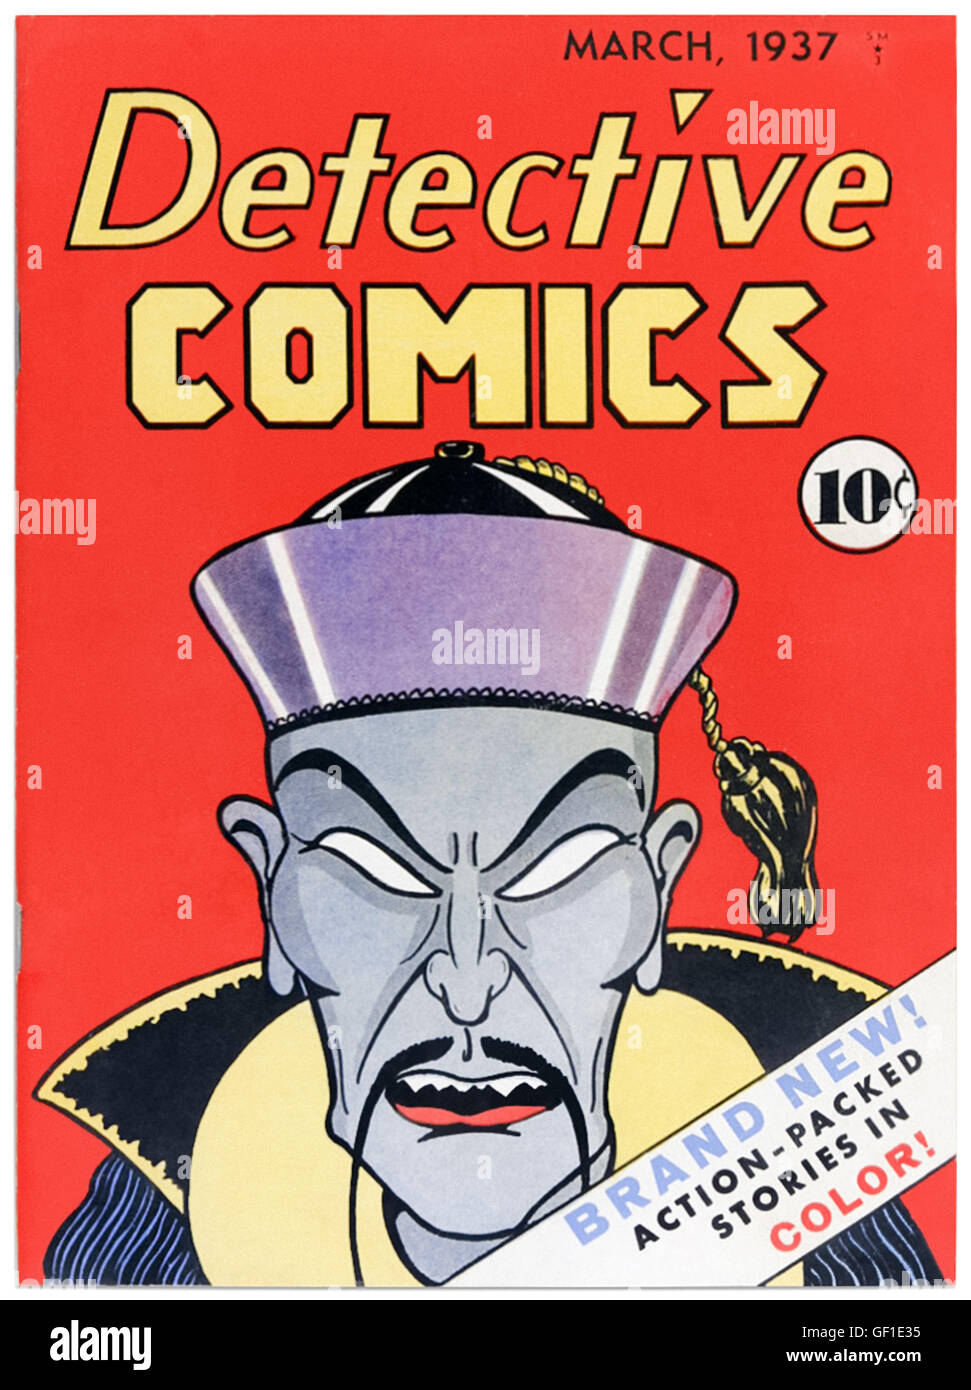 Detective Comics Issue 1 March 1937, the title that gave 'DC Comics' its name, featuring cover art by Vin Sullivan - Stock Image